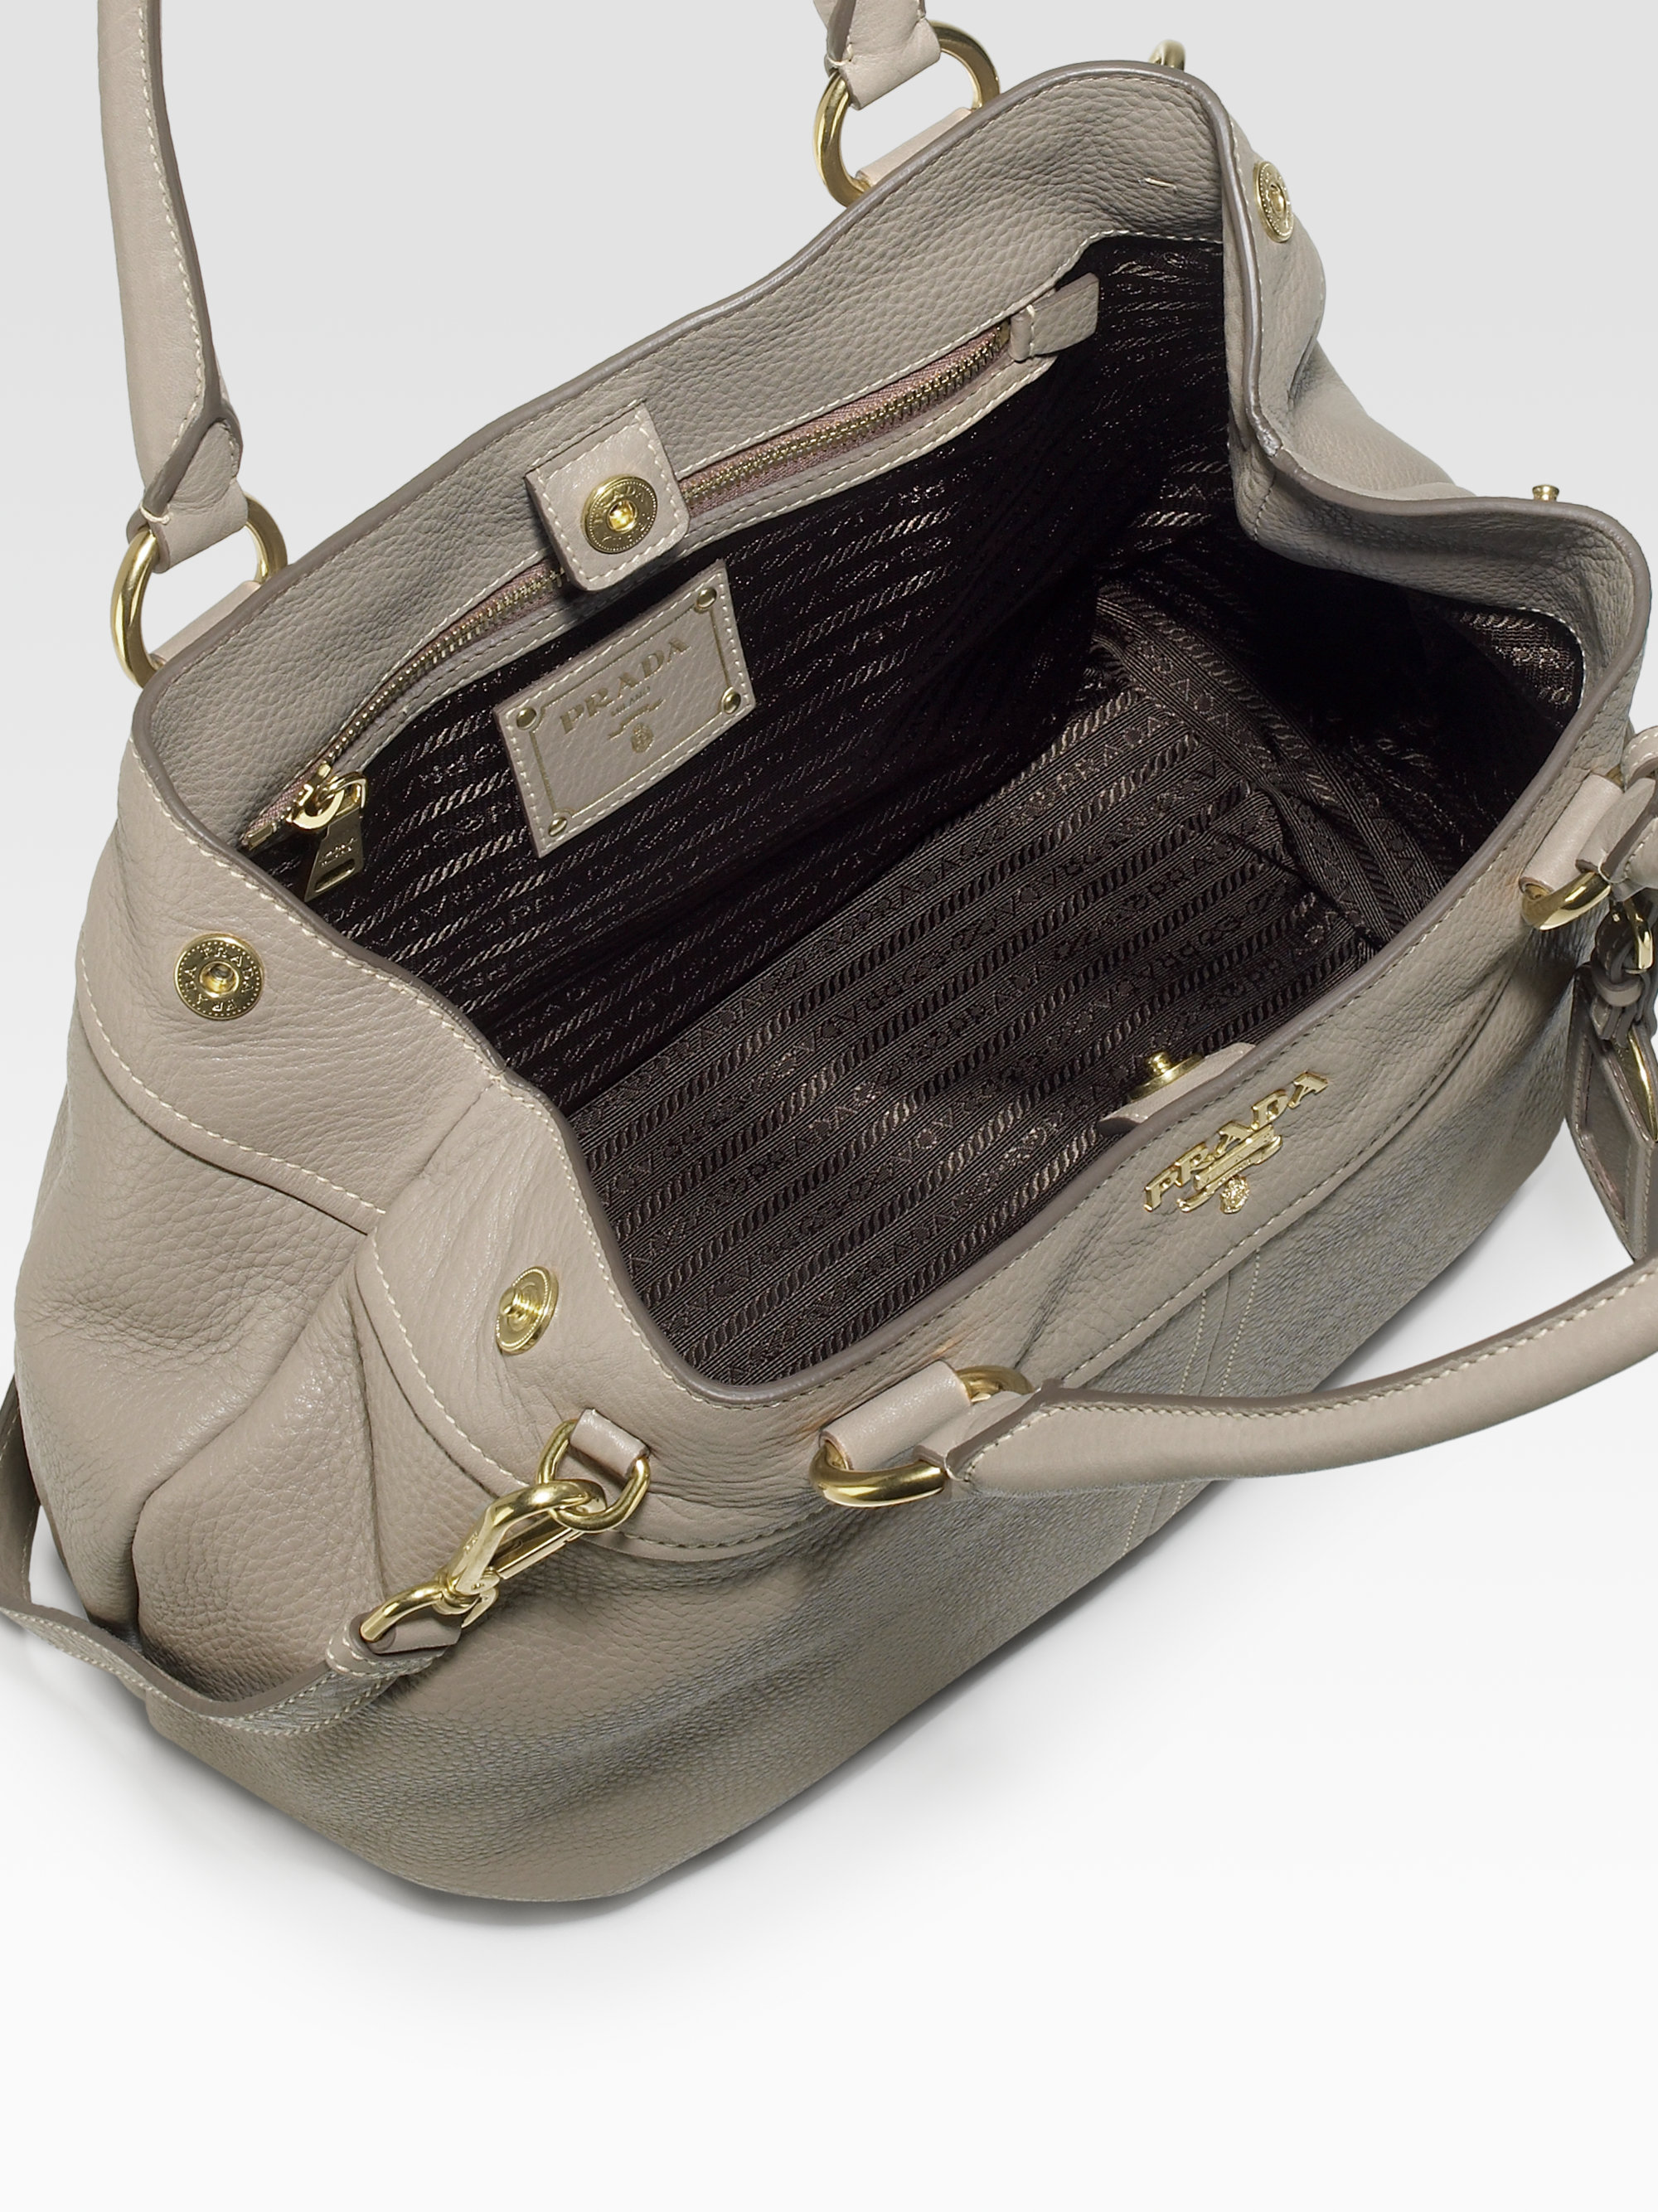 a0cfbb318448 Prada Vitello Daino Satchel in Gray - Lyst